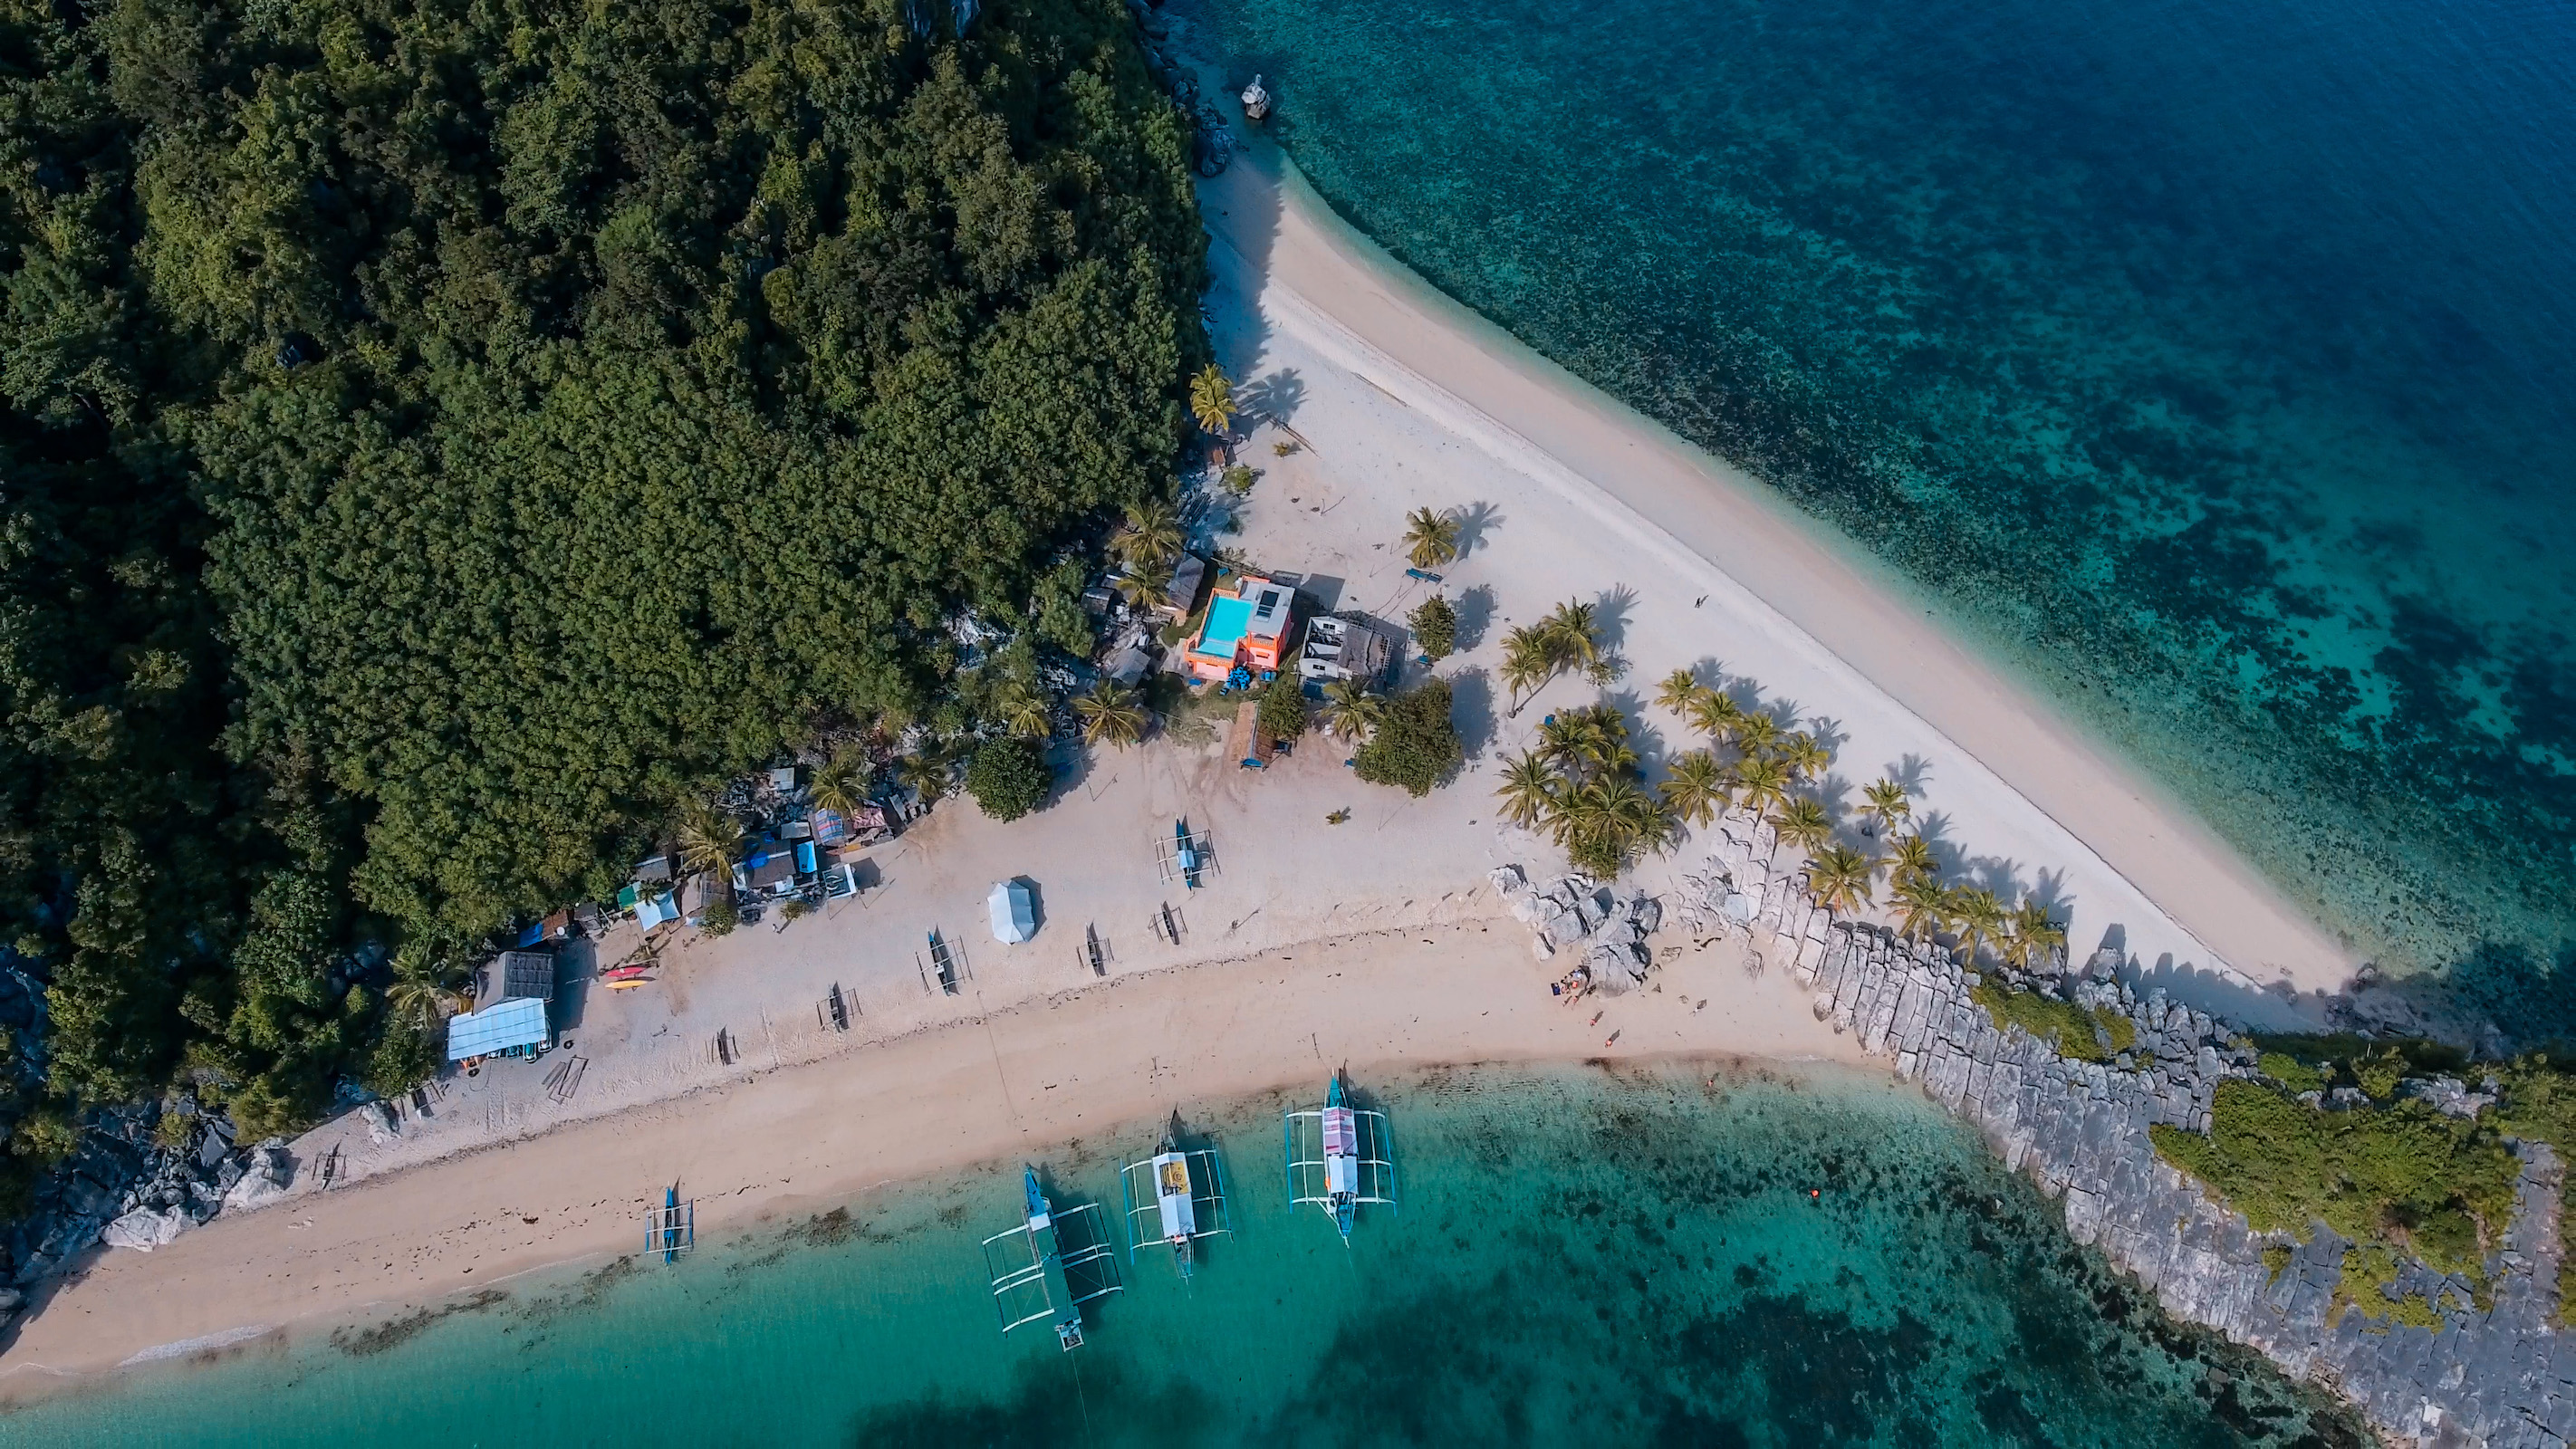 Iloilo Islas de Gigantes Island Hopping Tour with Seafood Lunch & Transfers from Roxas